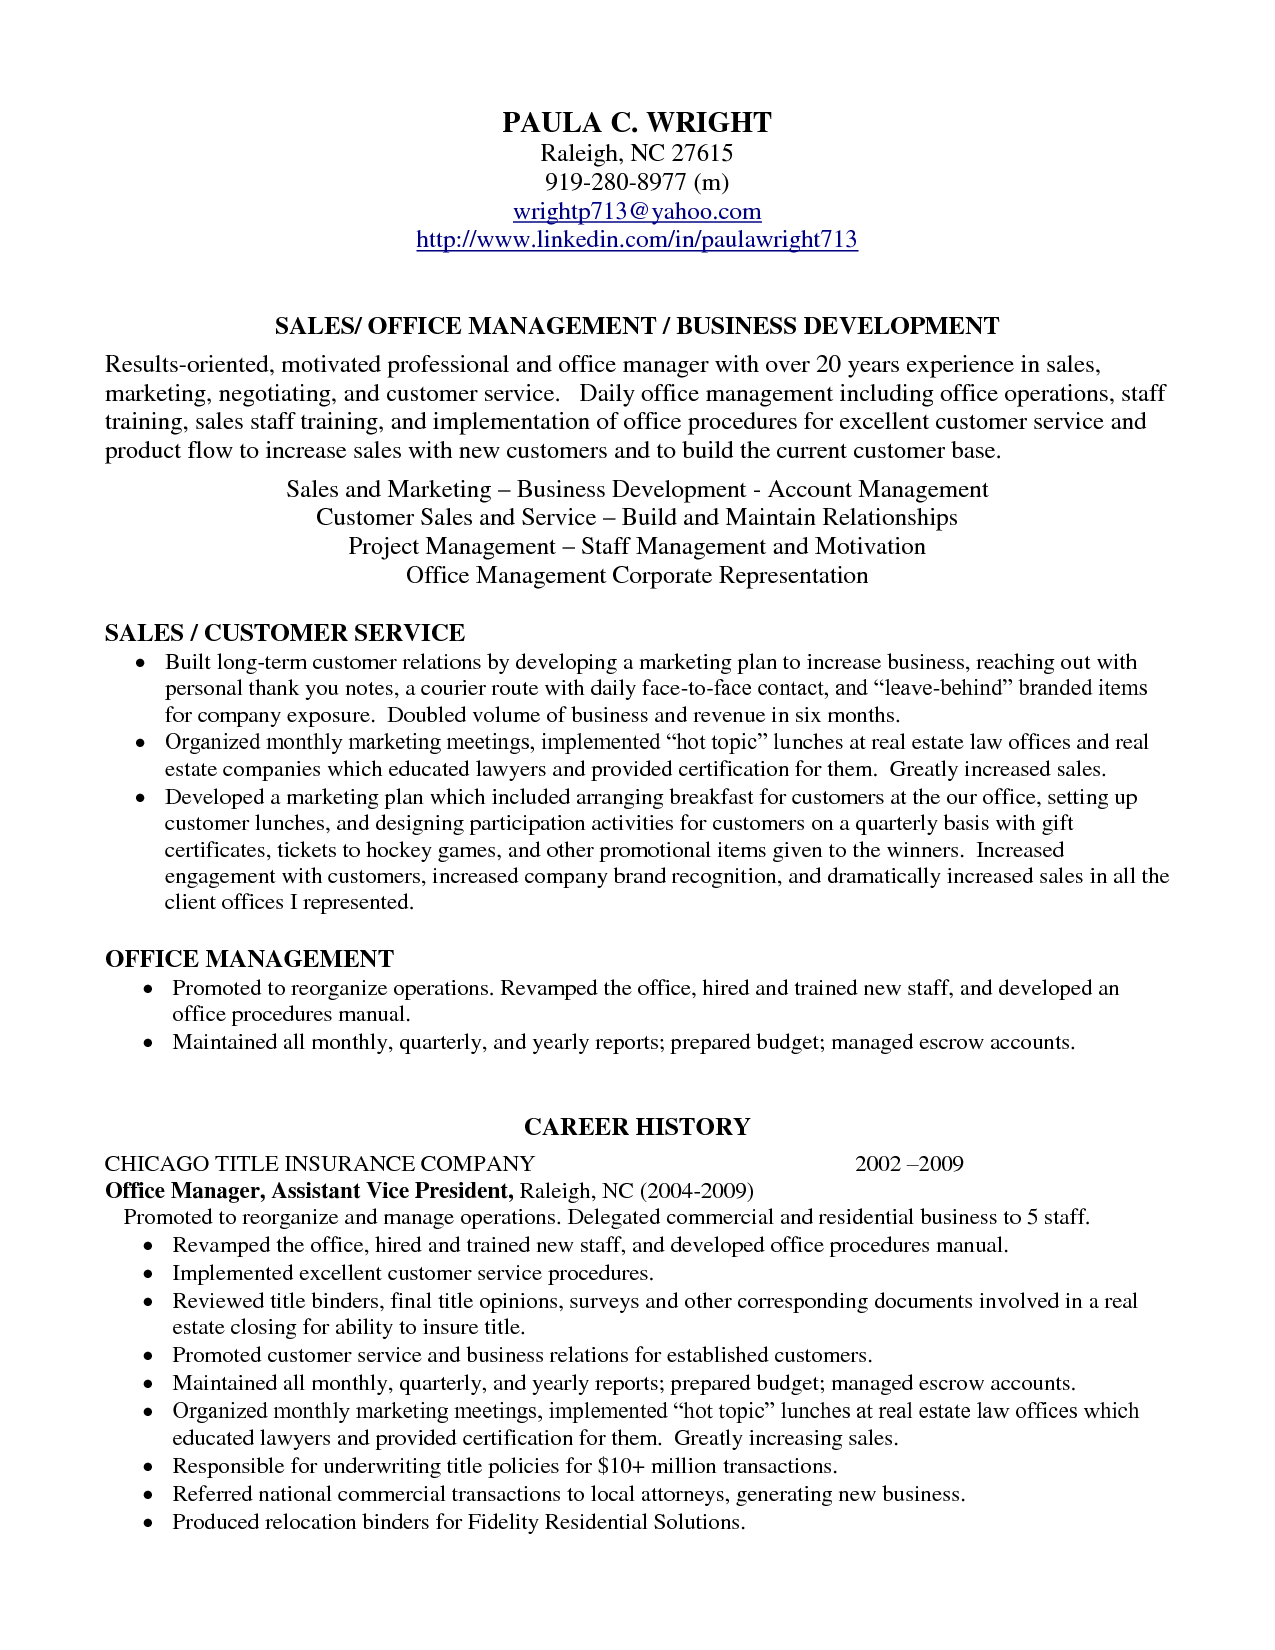 Sample Profile For Resume Professional Profile Resume Examples Resume Professional